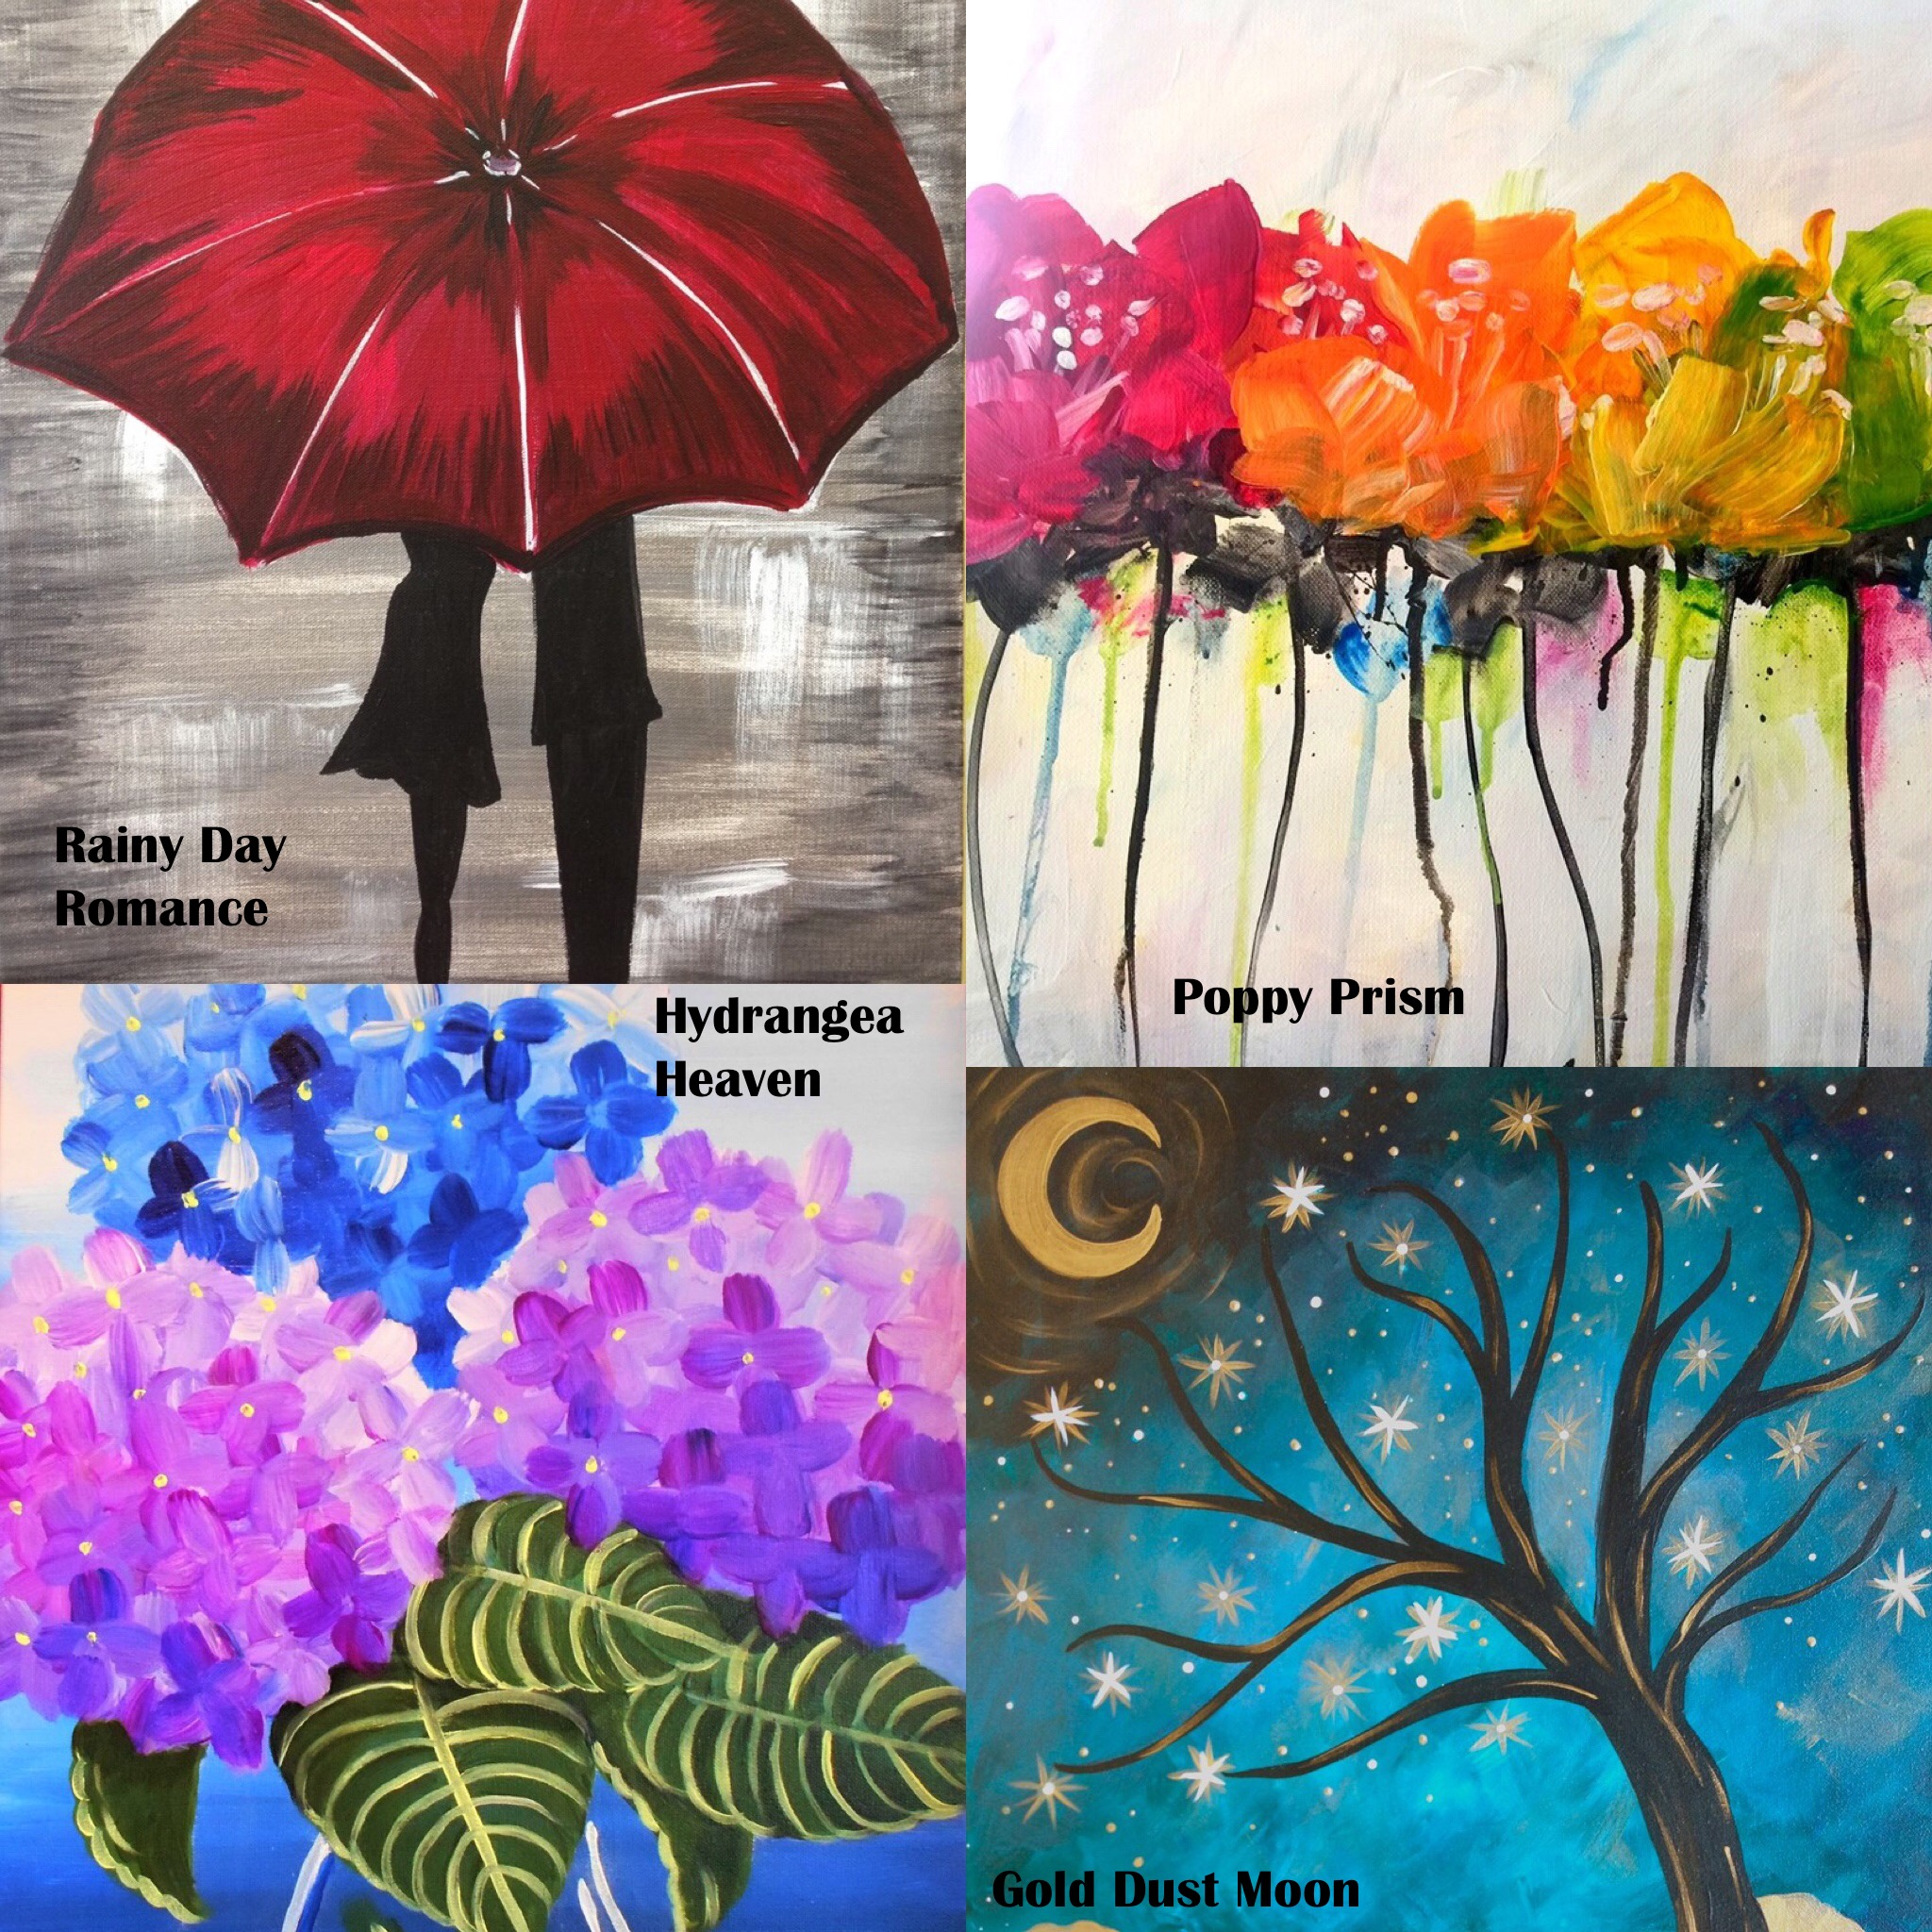 This Week at Your Neighborhood Paint and Sip Studio